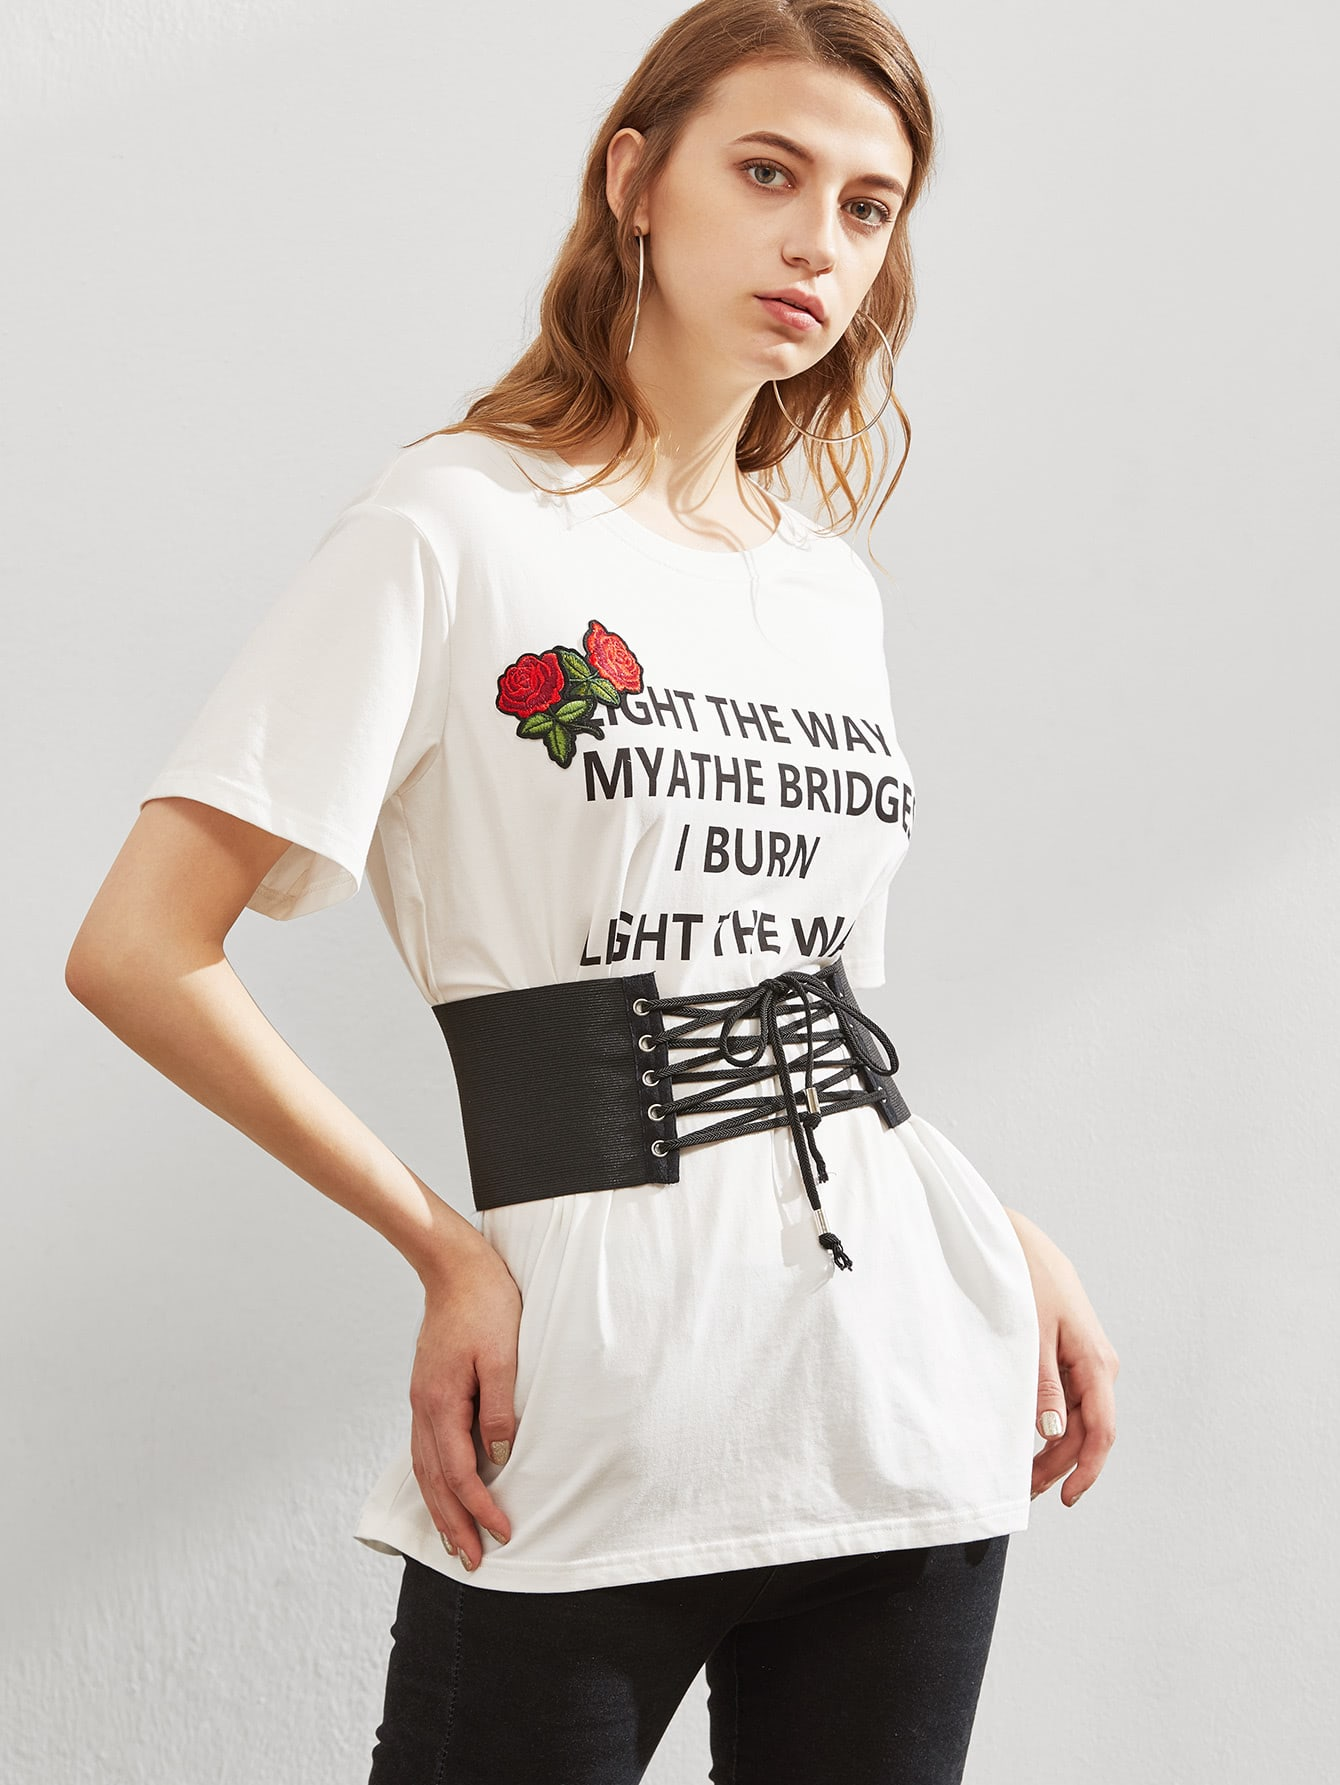 Embroidered rose applique corset belt graphic tee shein